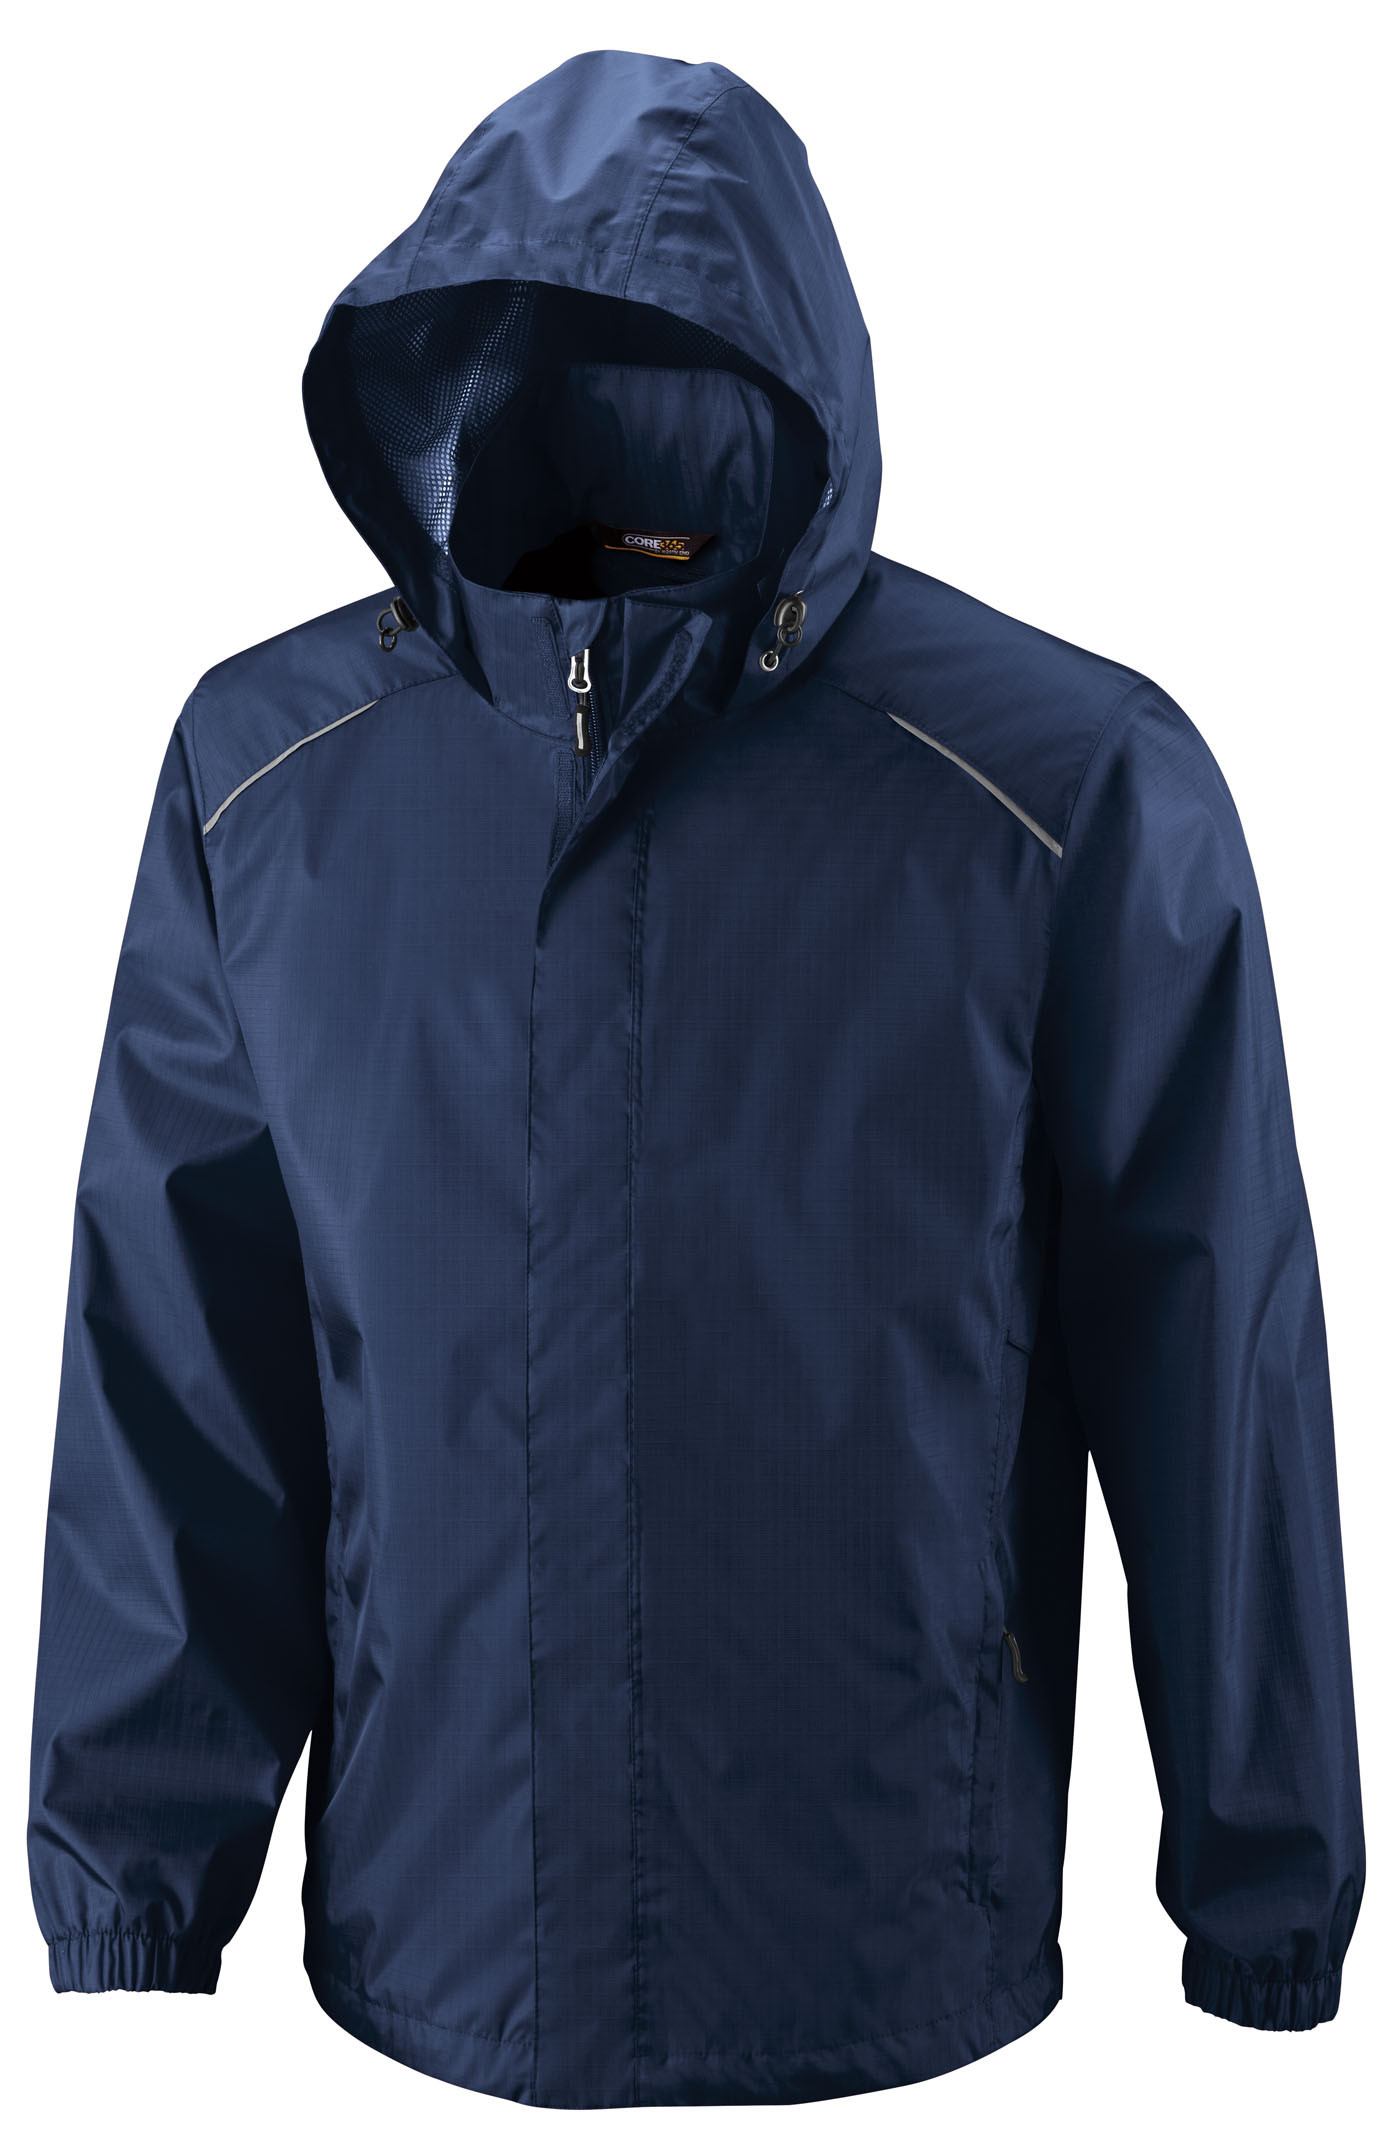 Ash City Core365 88185 - Climate Core365 Men's Seam-Sealed Lightweight Variegated Ripstop Jacket